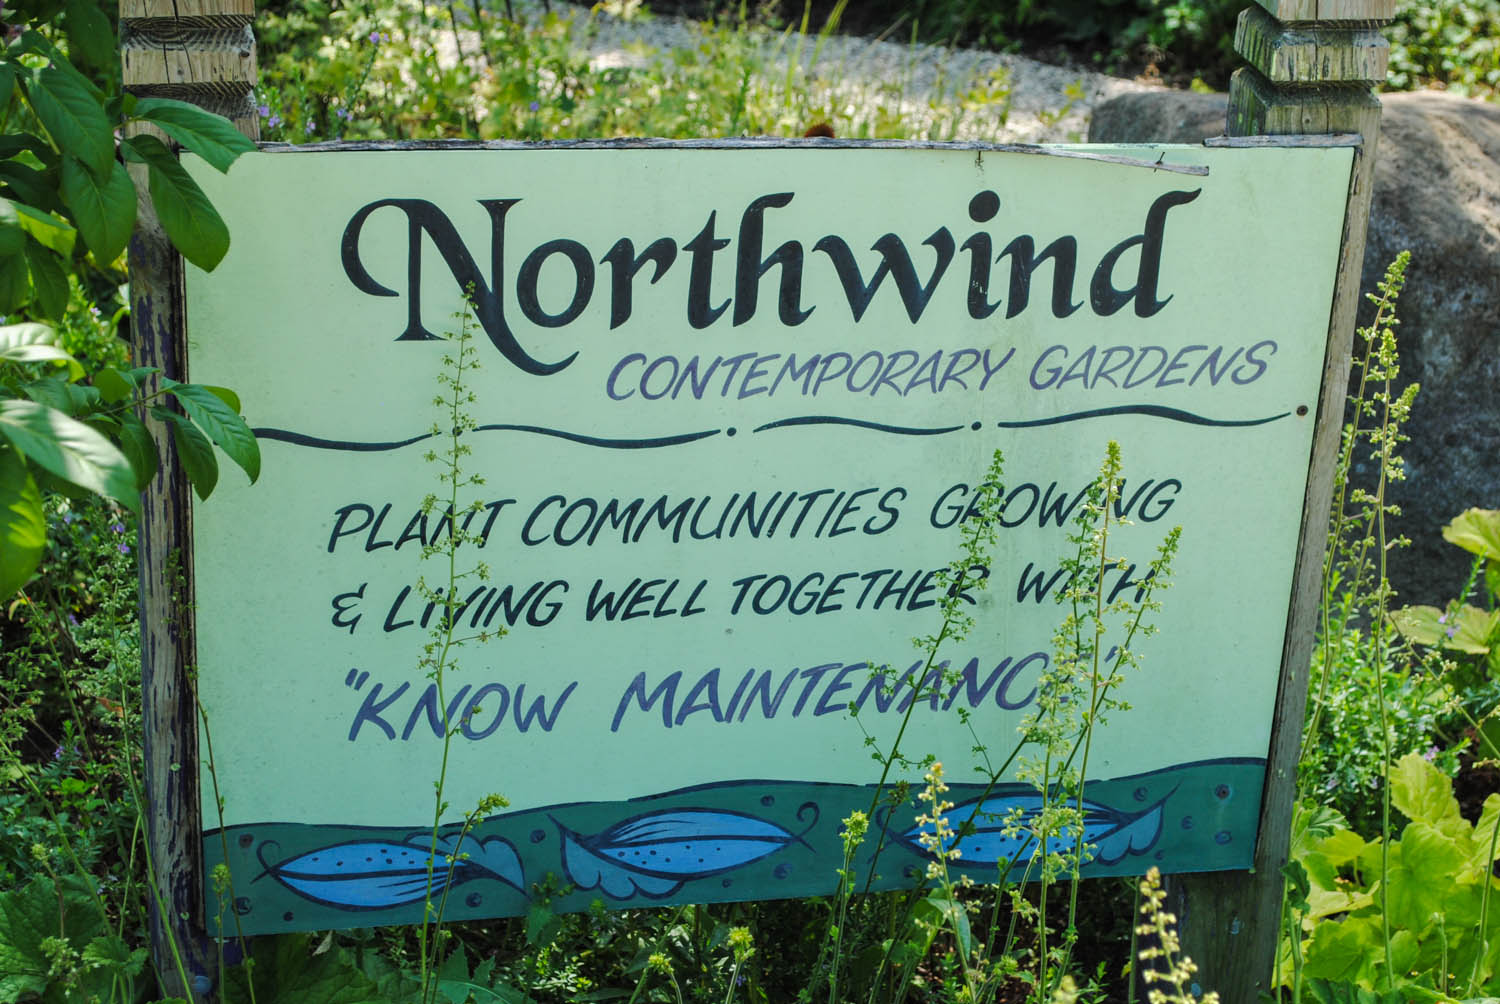 "The truth of ""know maintenance"" instead of the fallacy of ""no maintenance"", a belief imbued in the plantings at Northwind."